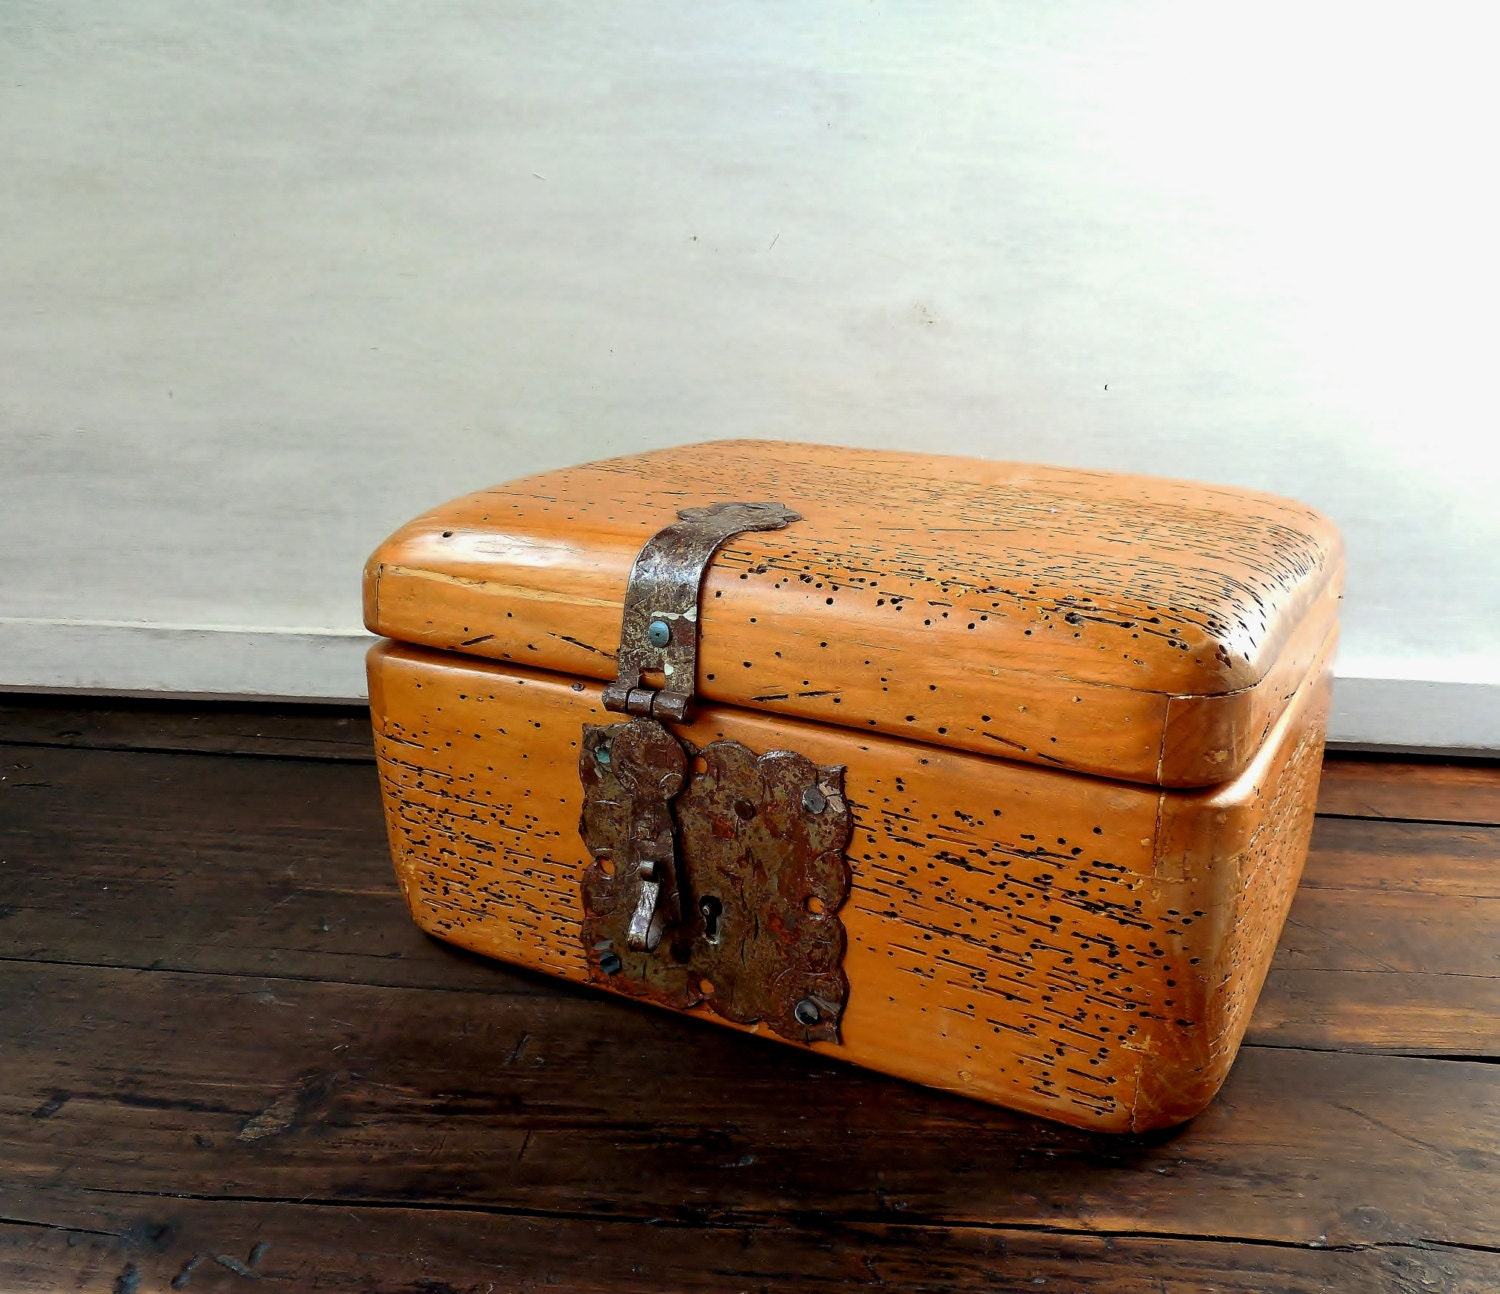 Wood chest vintage hinged box unusual strap latch hardware